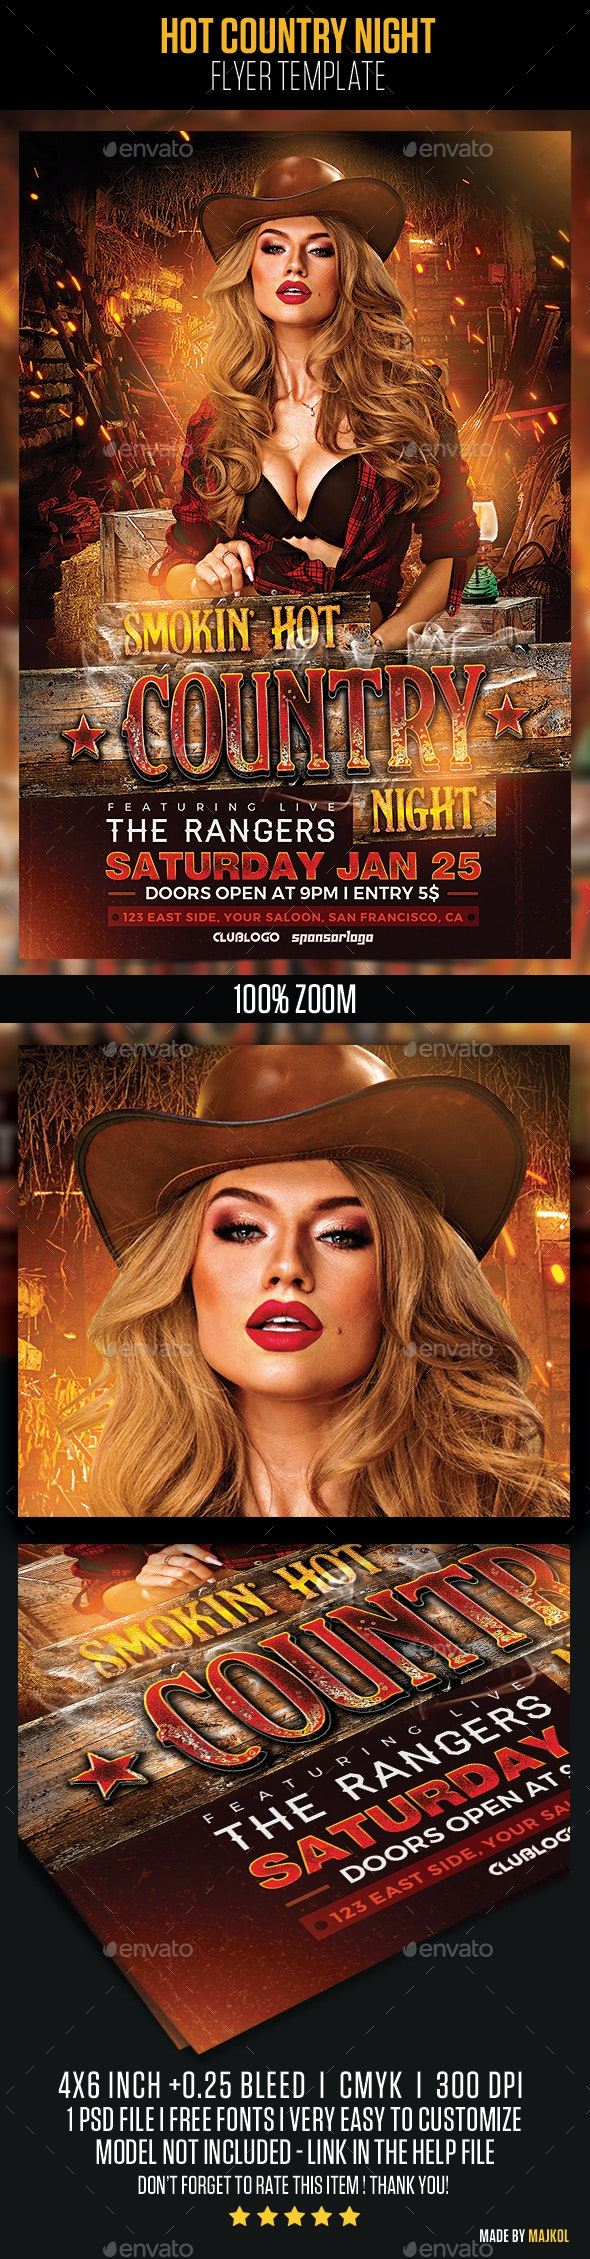 Hot Country Night Flyer Template - Events Flyers